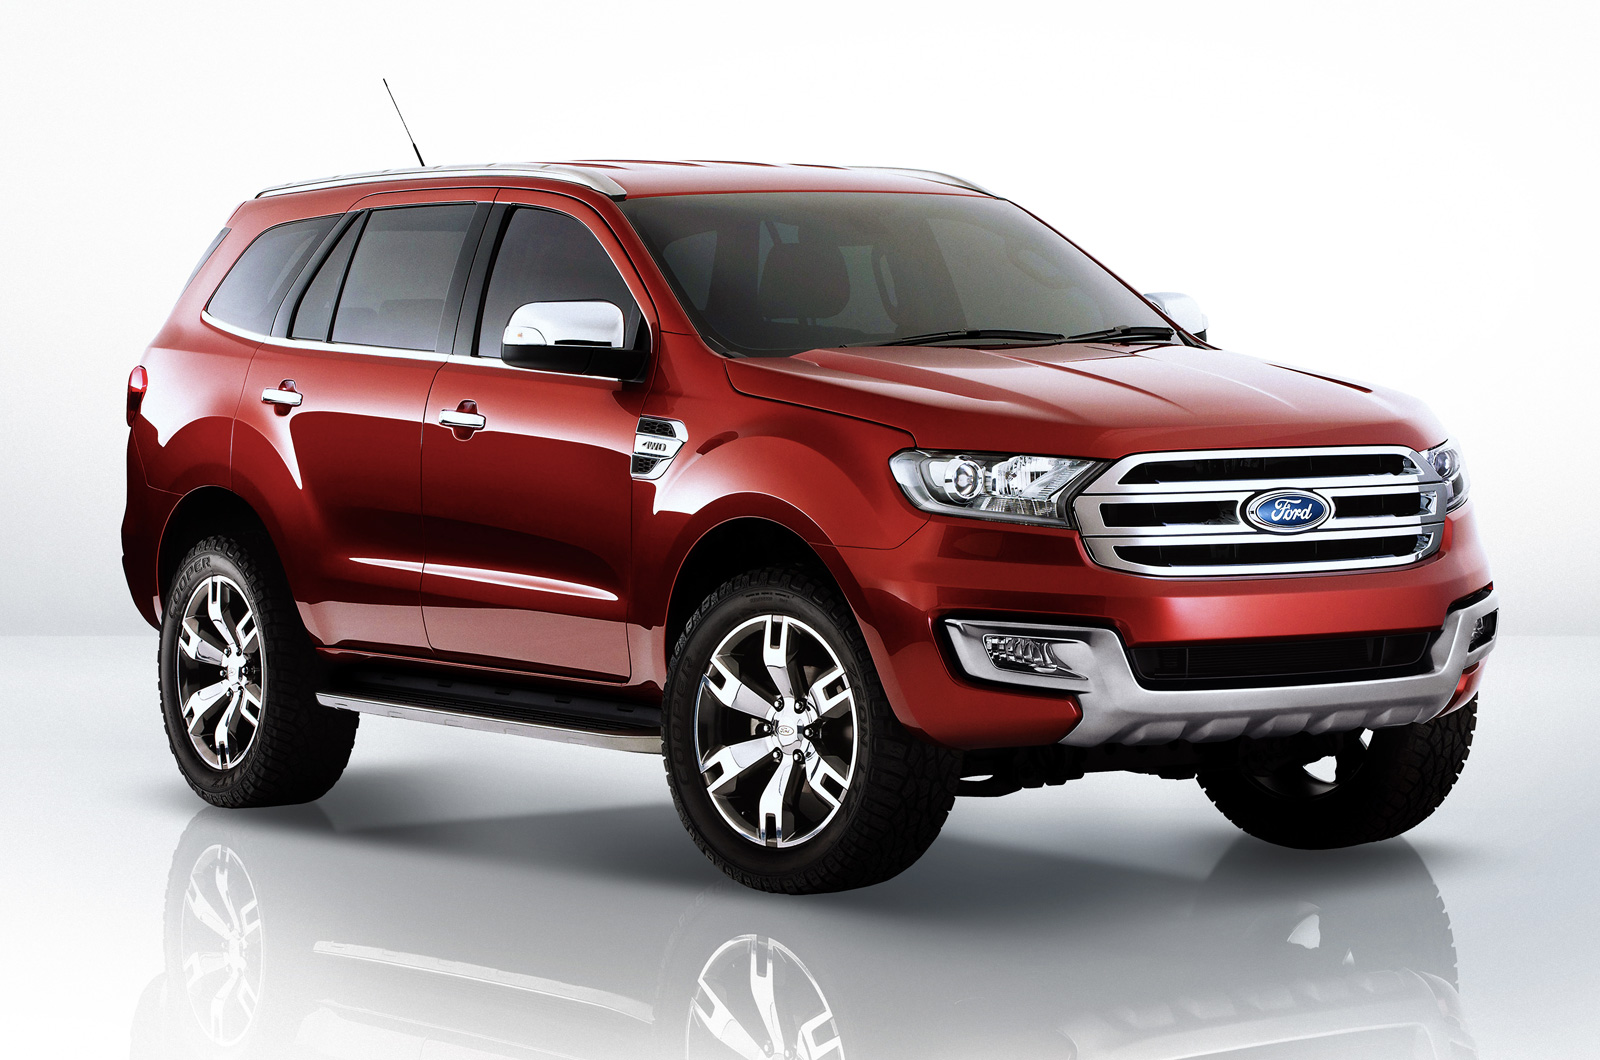 sc 1 st  Autocar India & New Ford Endeavour in India in 2015 - Autocar India markmcfarlin.com